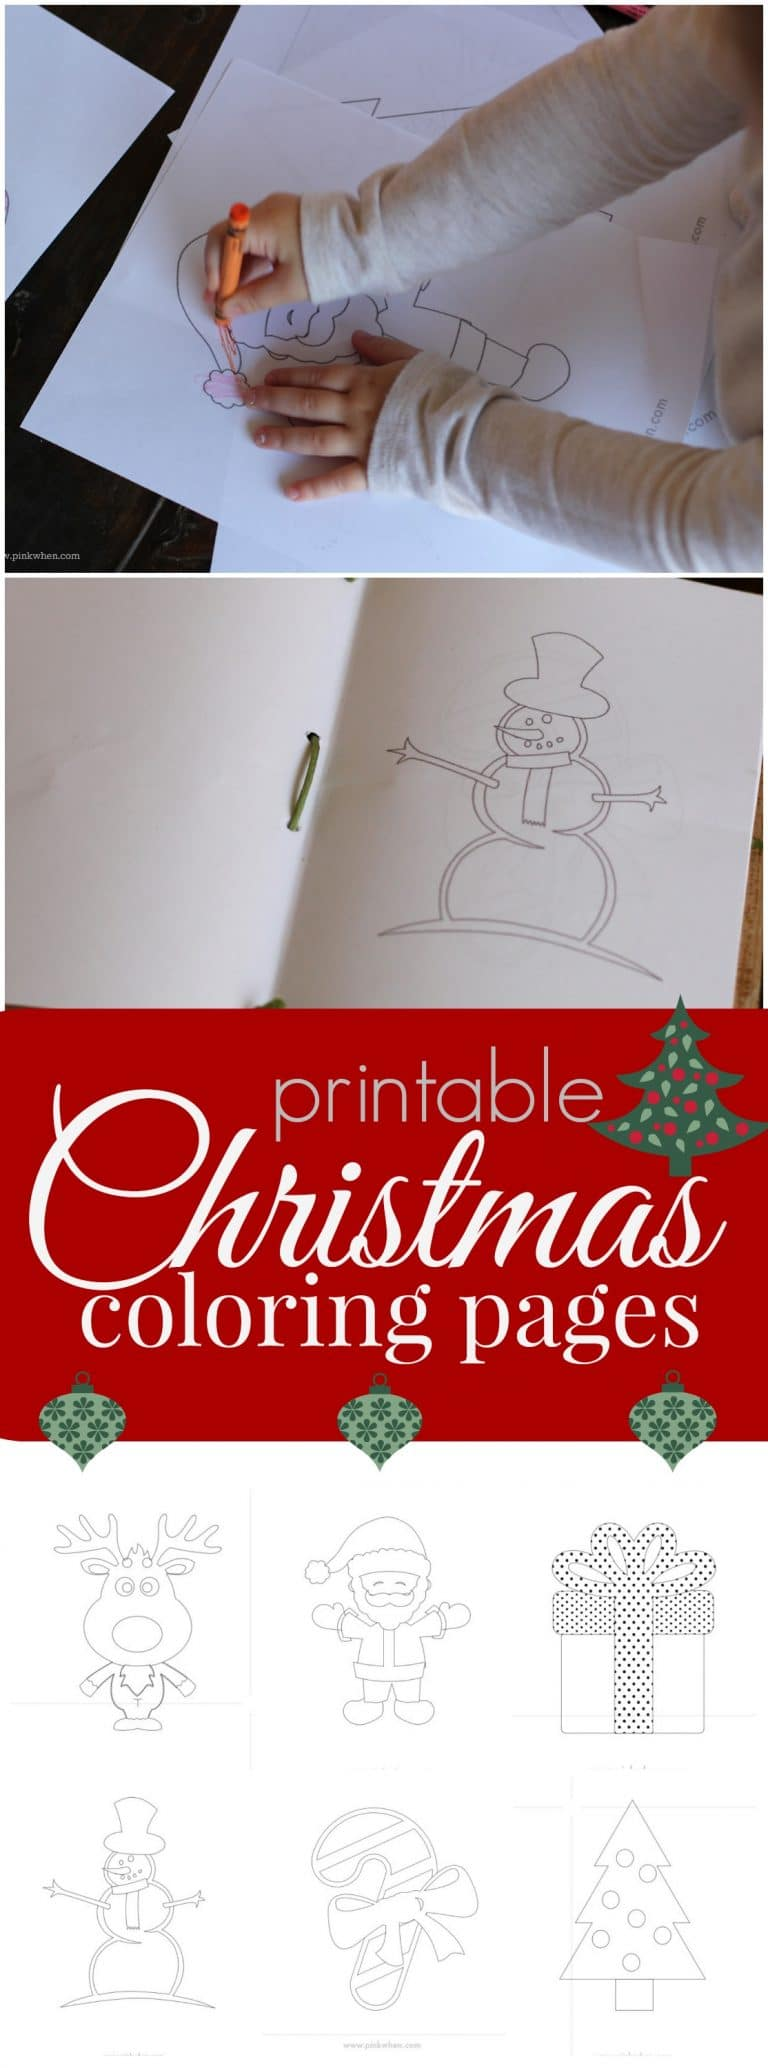 Christmas-Printable-Coloring-Pages